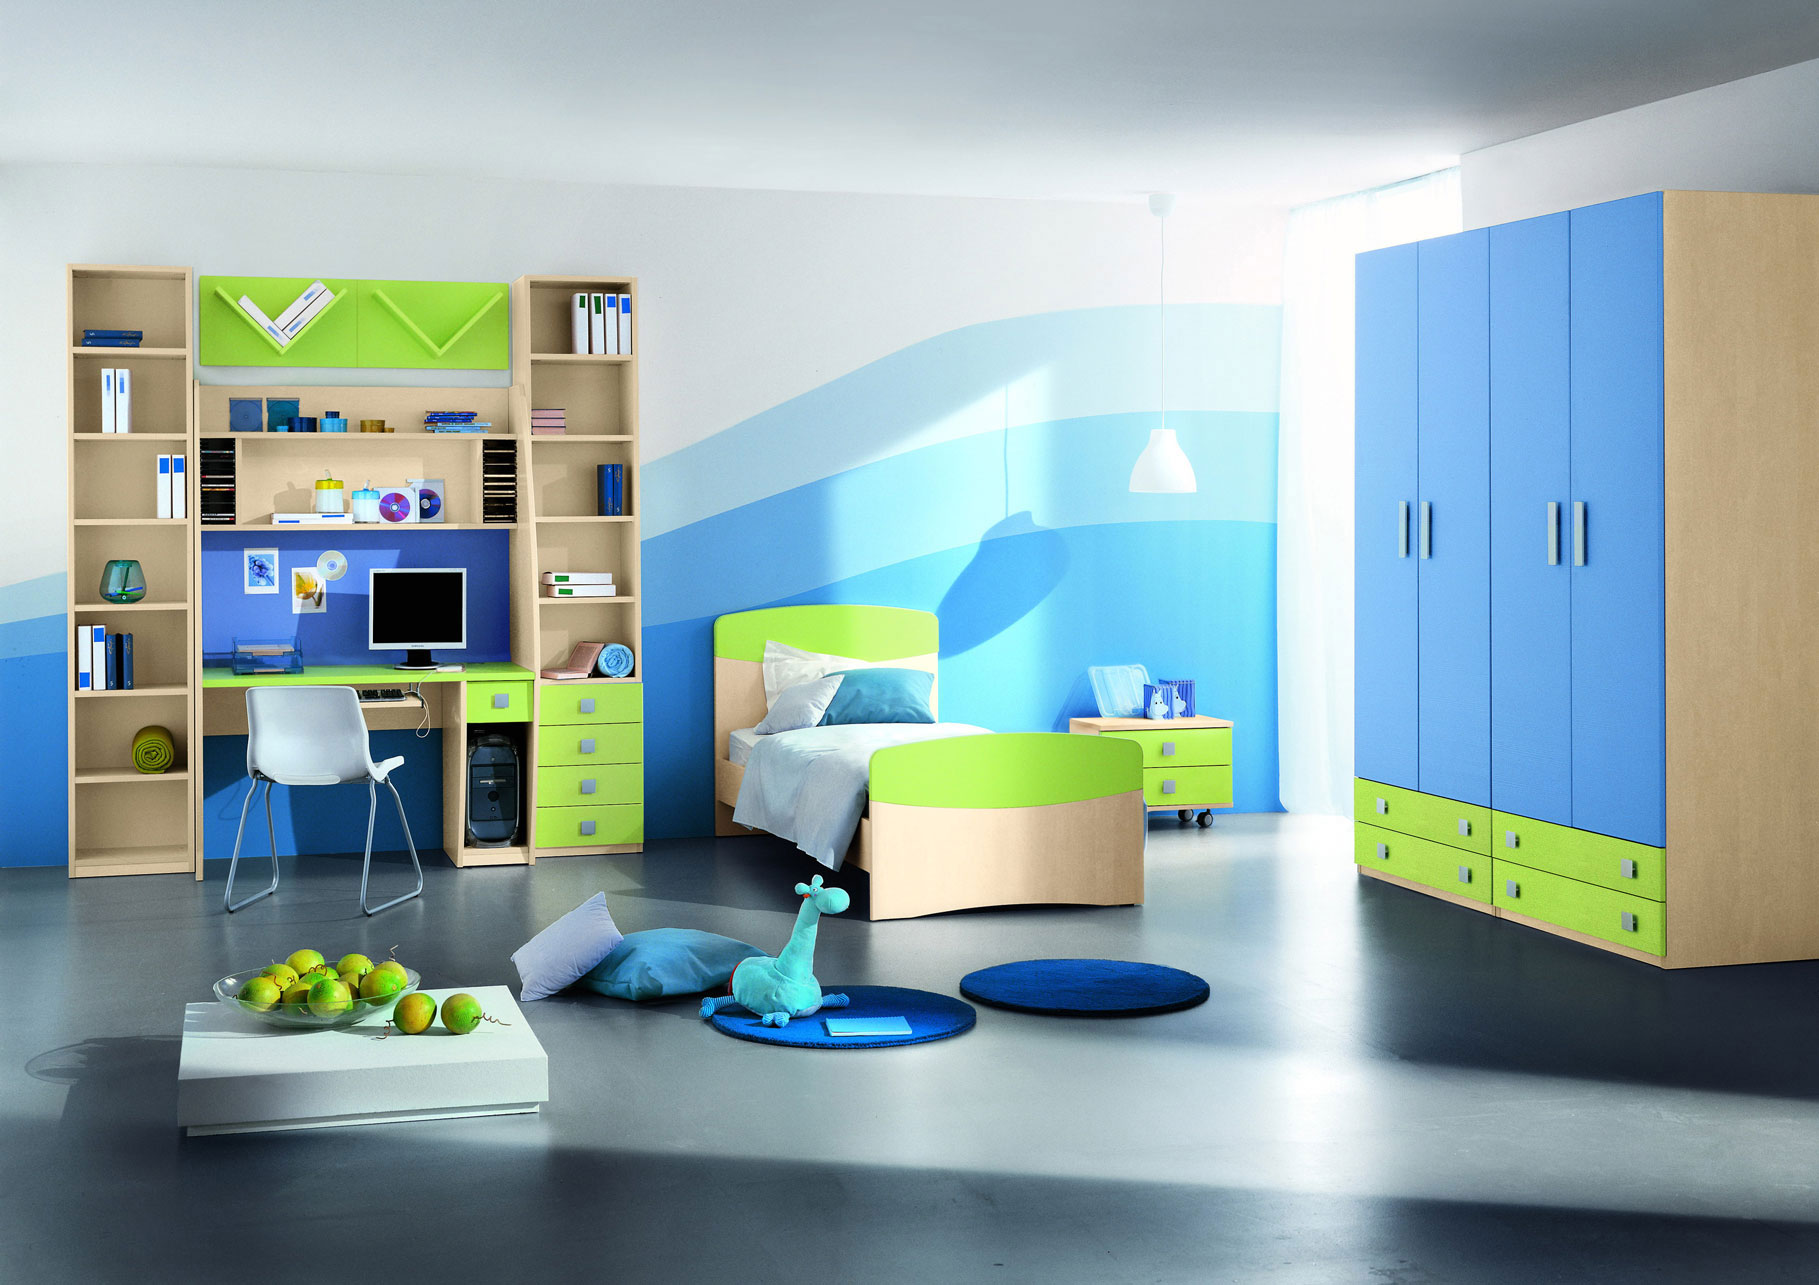 Stunning Blue and Green Kids Room Ideas 1819 x 1285 · 287 kB · jpeg